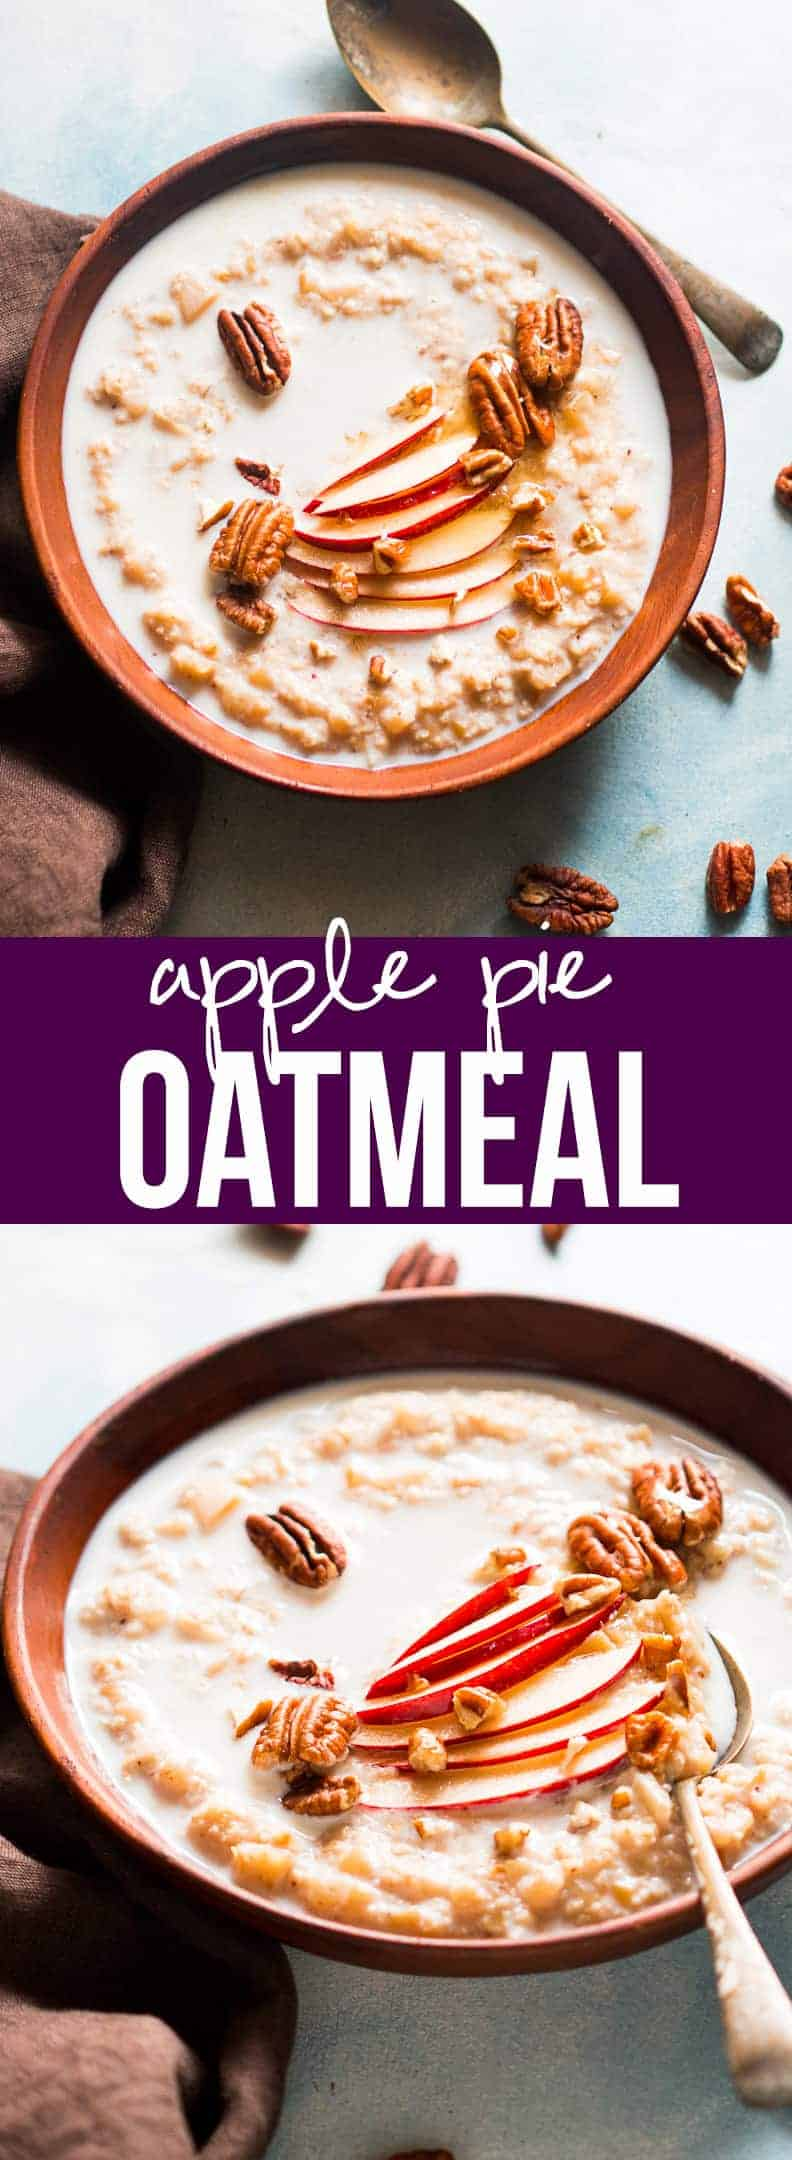 Quick and Healthy Apple Pie Oatmeal Breakfast Bowls - with pecan, honey and cinnamon. Comforting stovetop family breakfast in a jiffy!